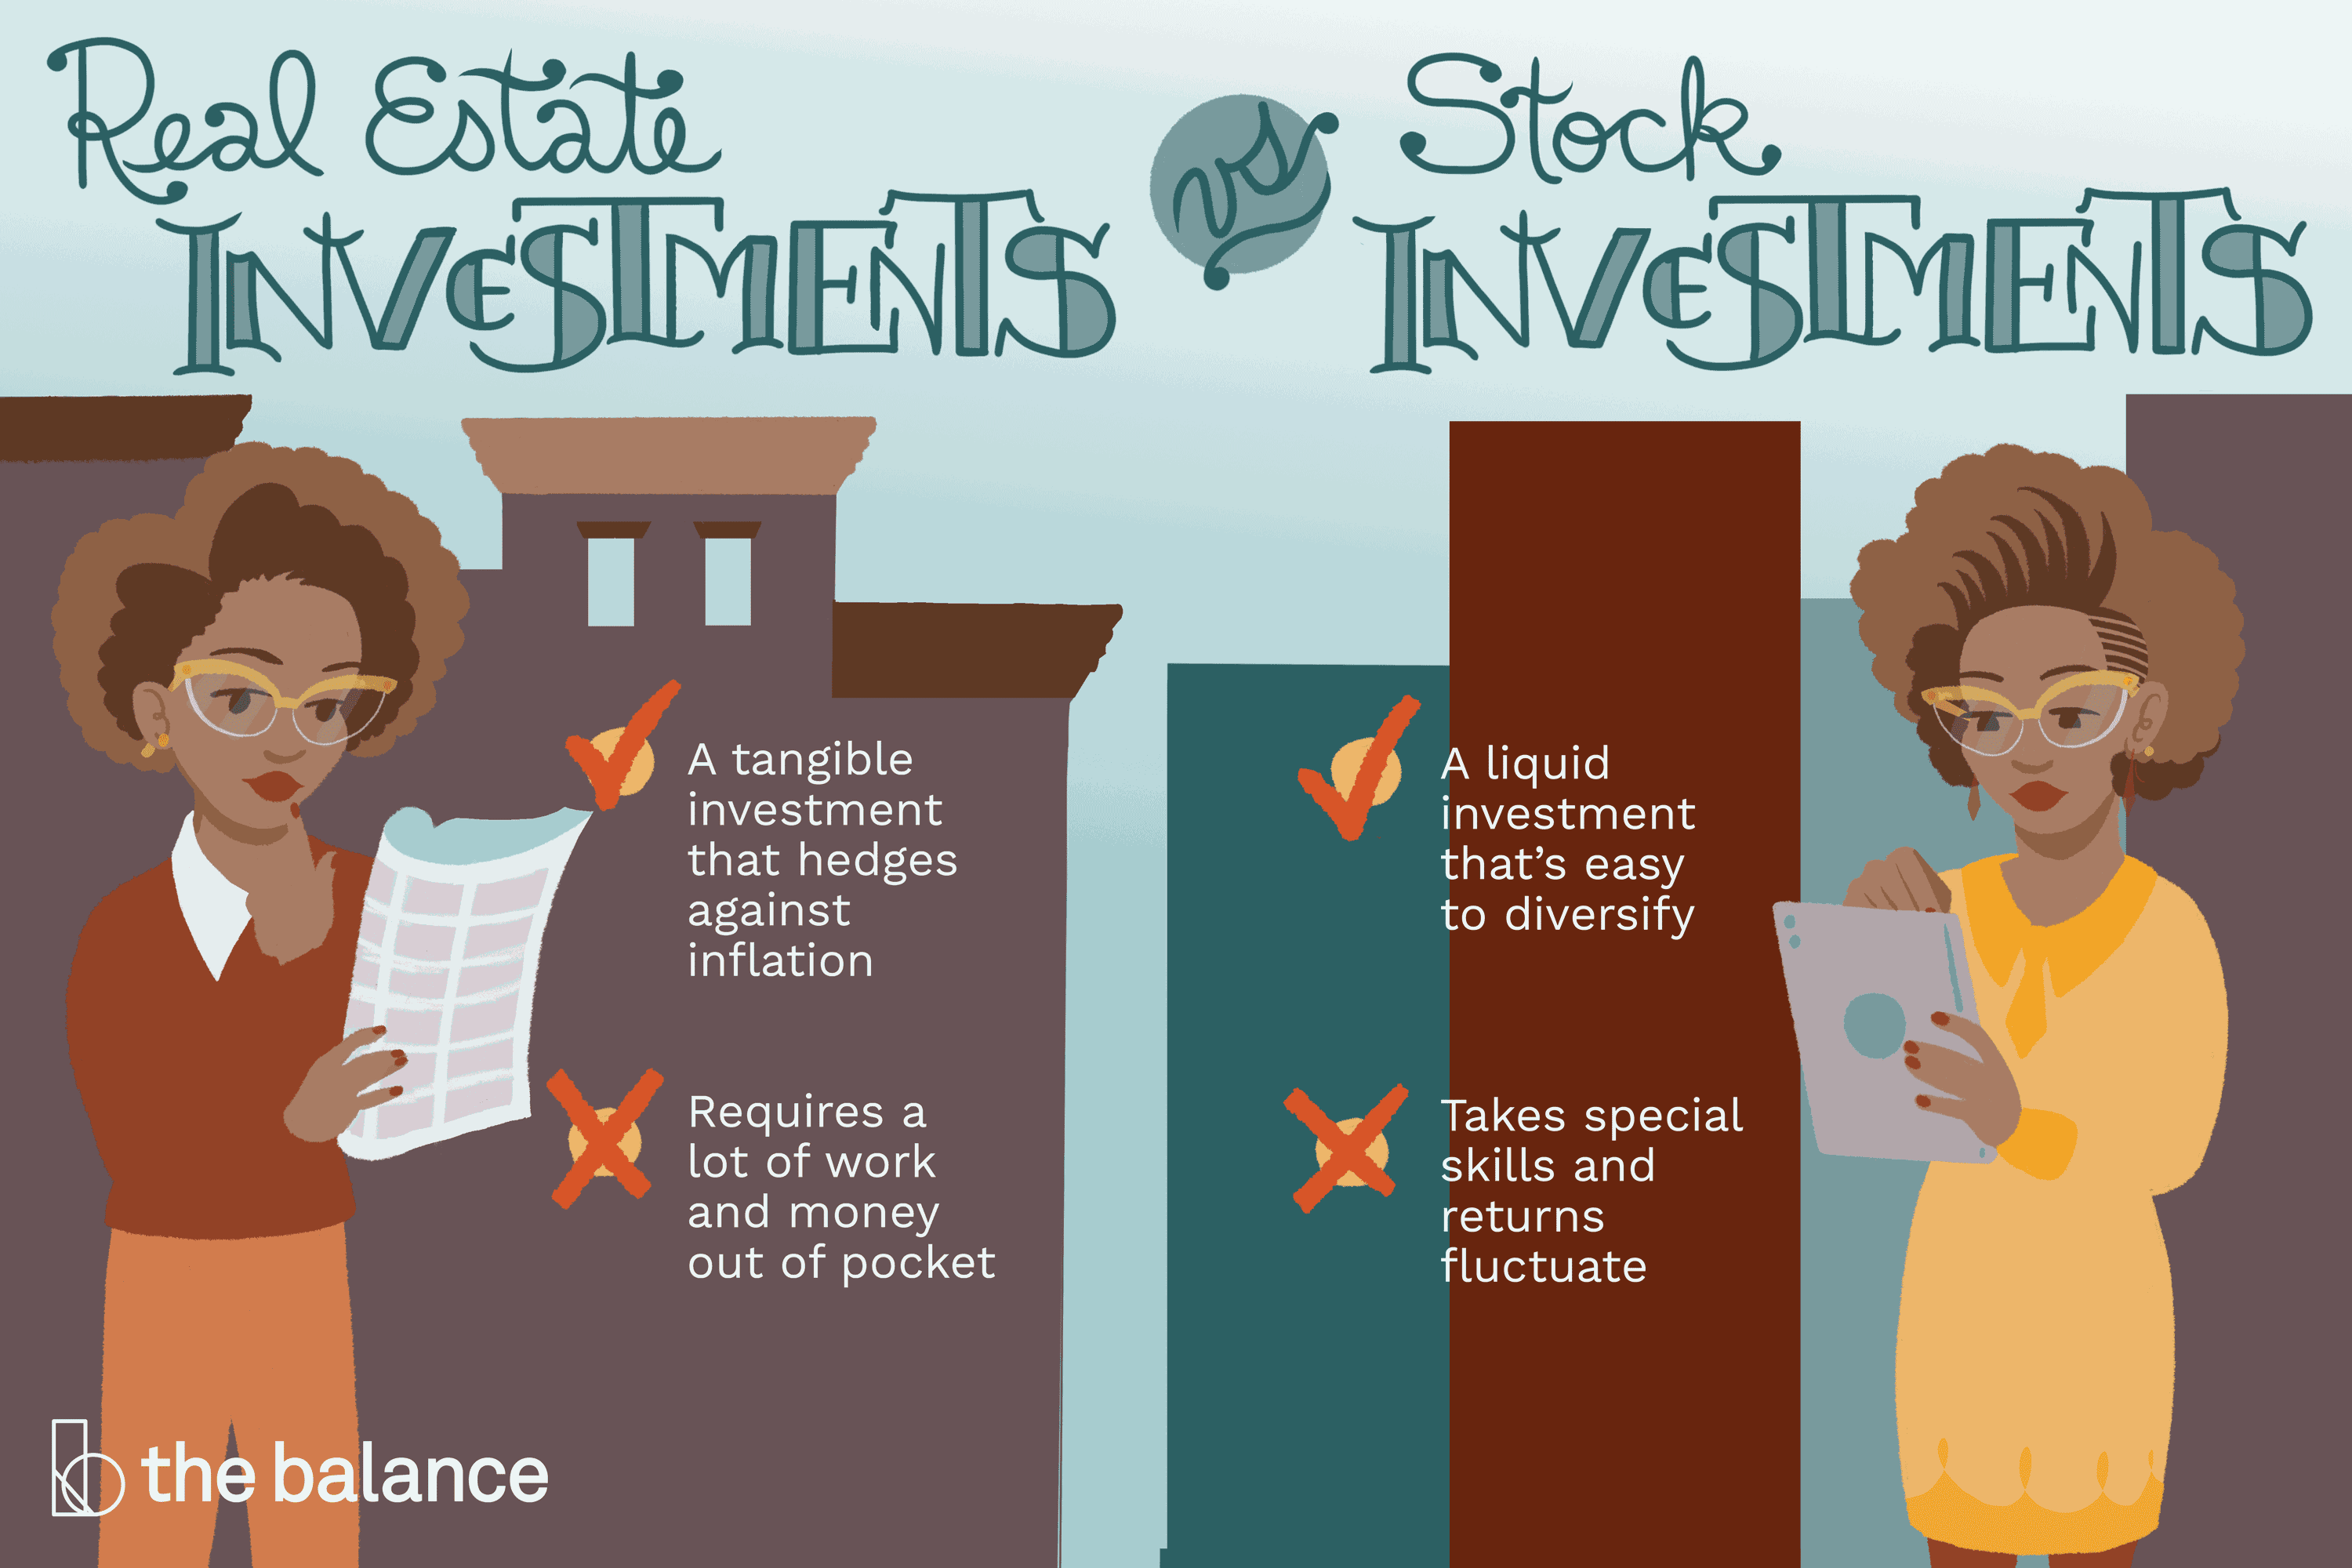 Should You Invest in Real Estate or Stocks?